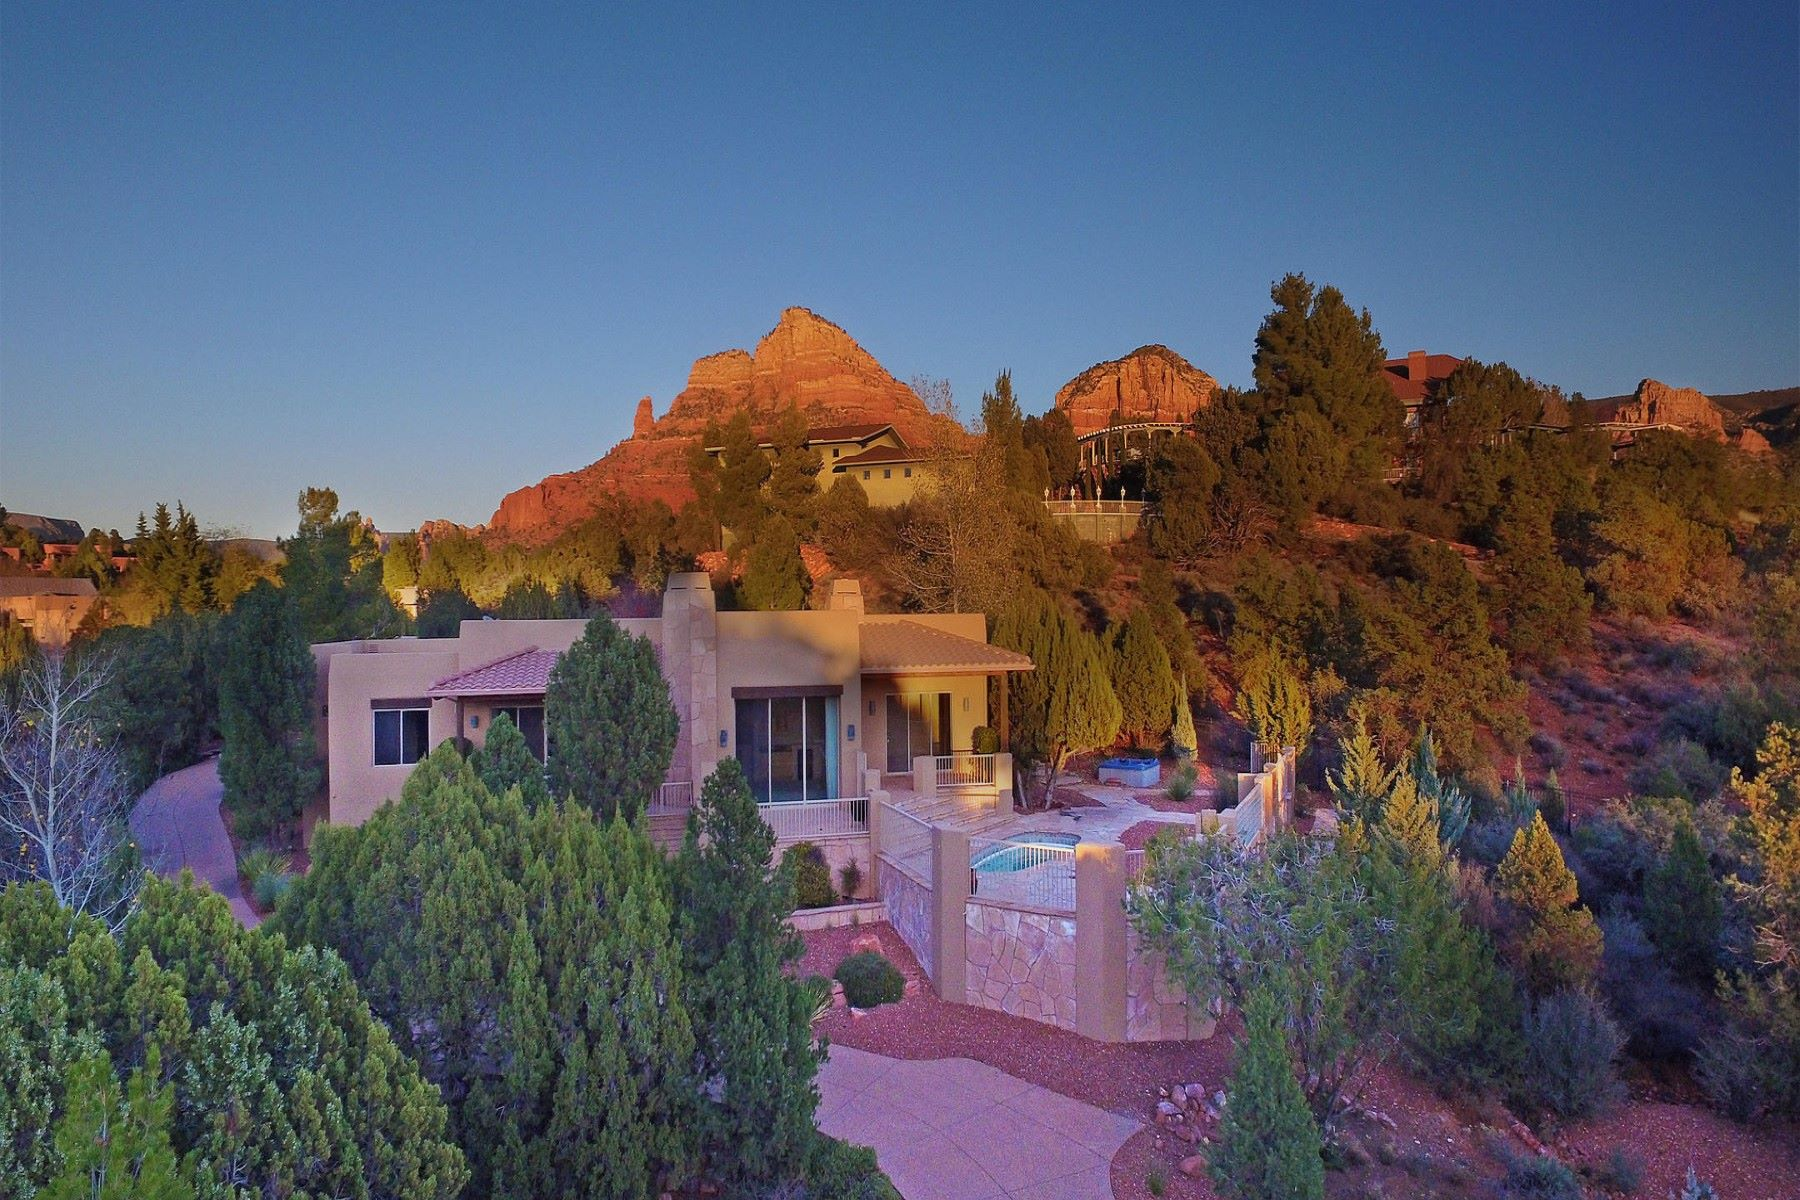 Villa per Vendita alle ore Gorgeous home with captivating views 45 Scenic Drive, Sedona, Arizona, 86336 Stati Uniti